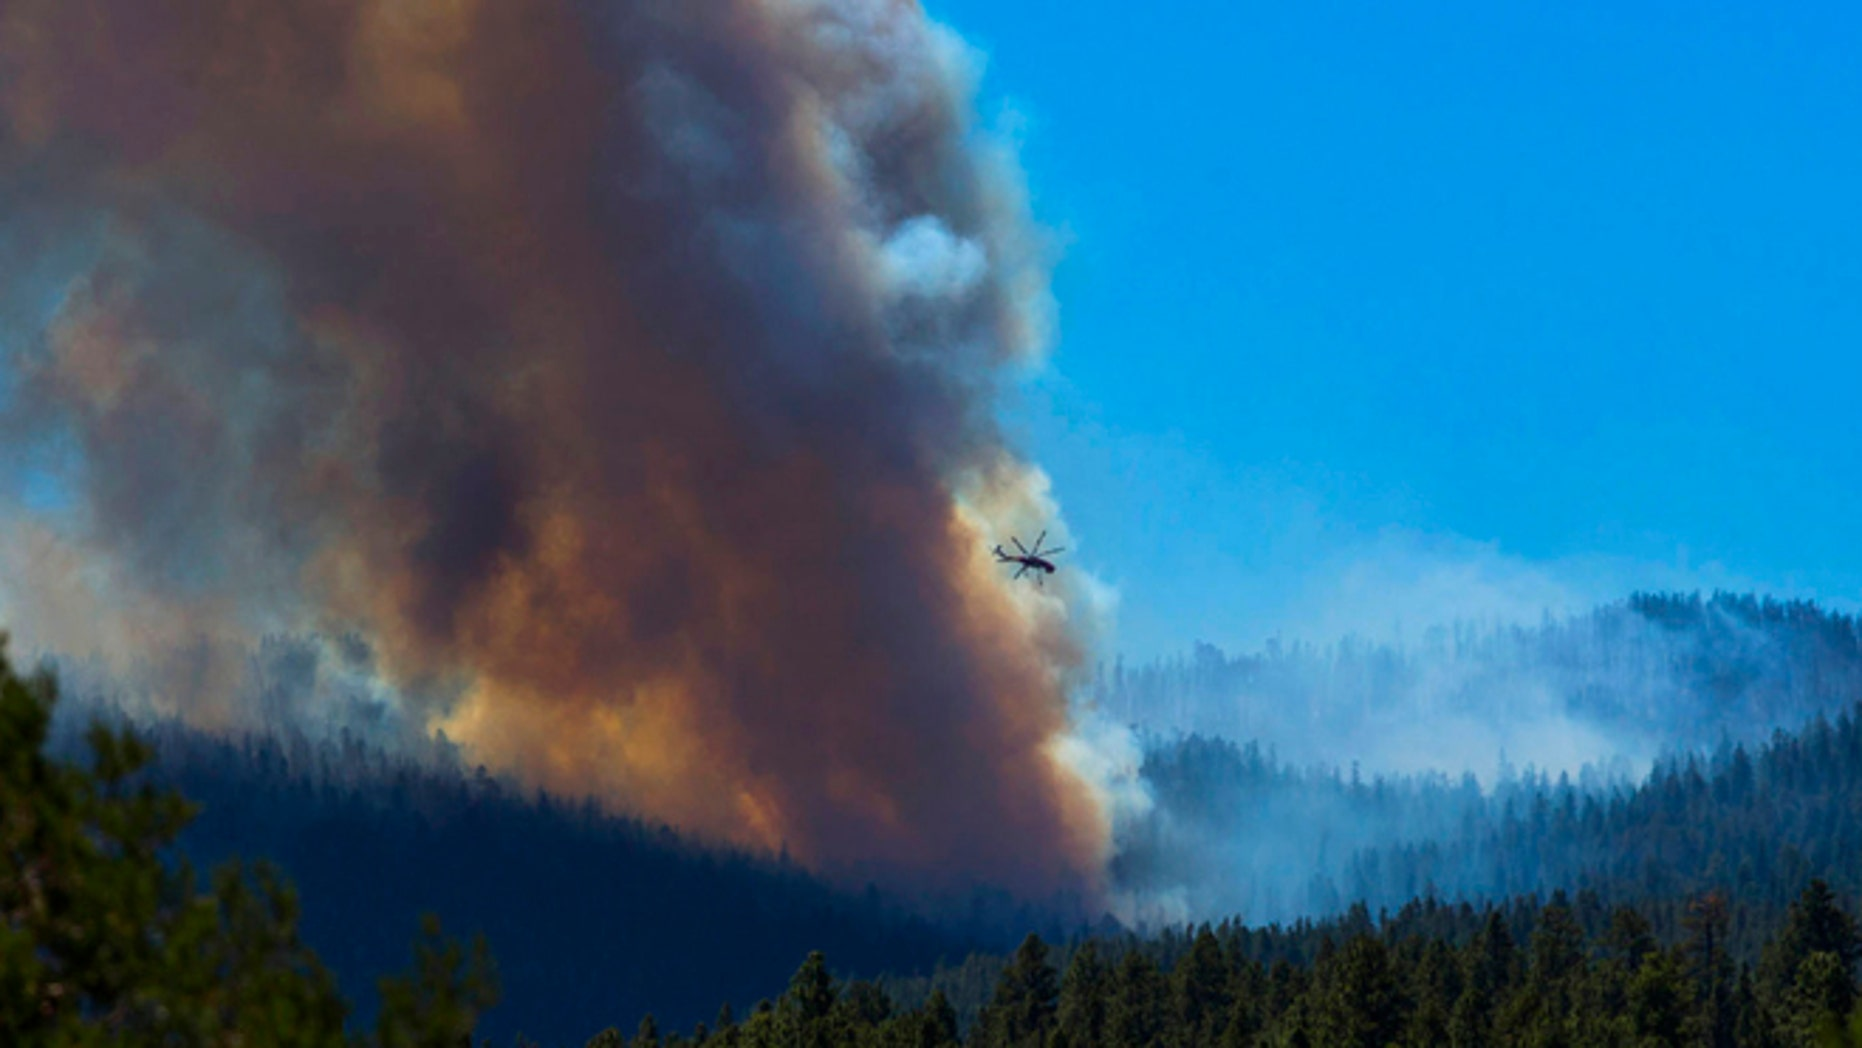 June 27, 2014: A helicopter battles the blaze with lake water as smoke rises from the trees of the San Juan fire near Vernon, Ariz.